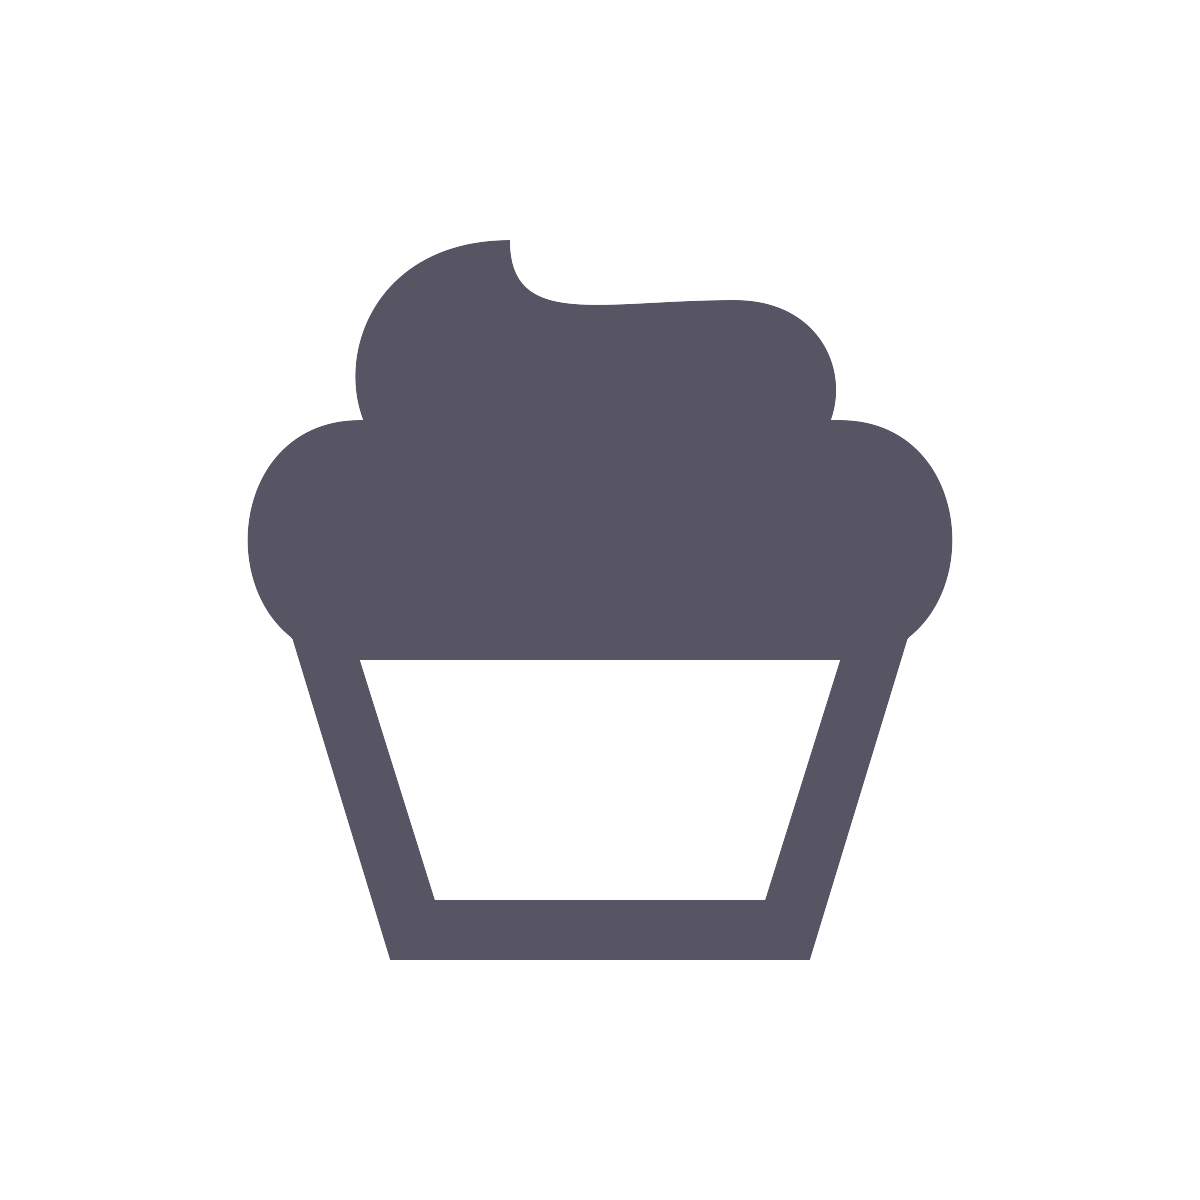 icon-cupcake-dark-chocolate